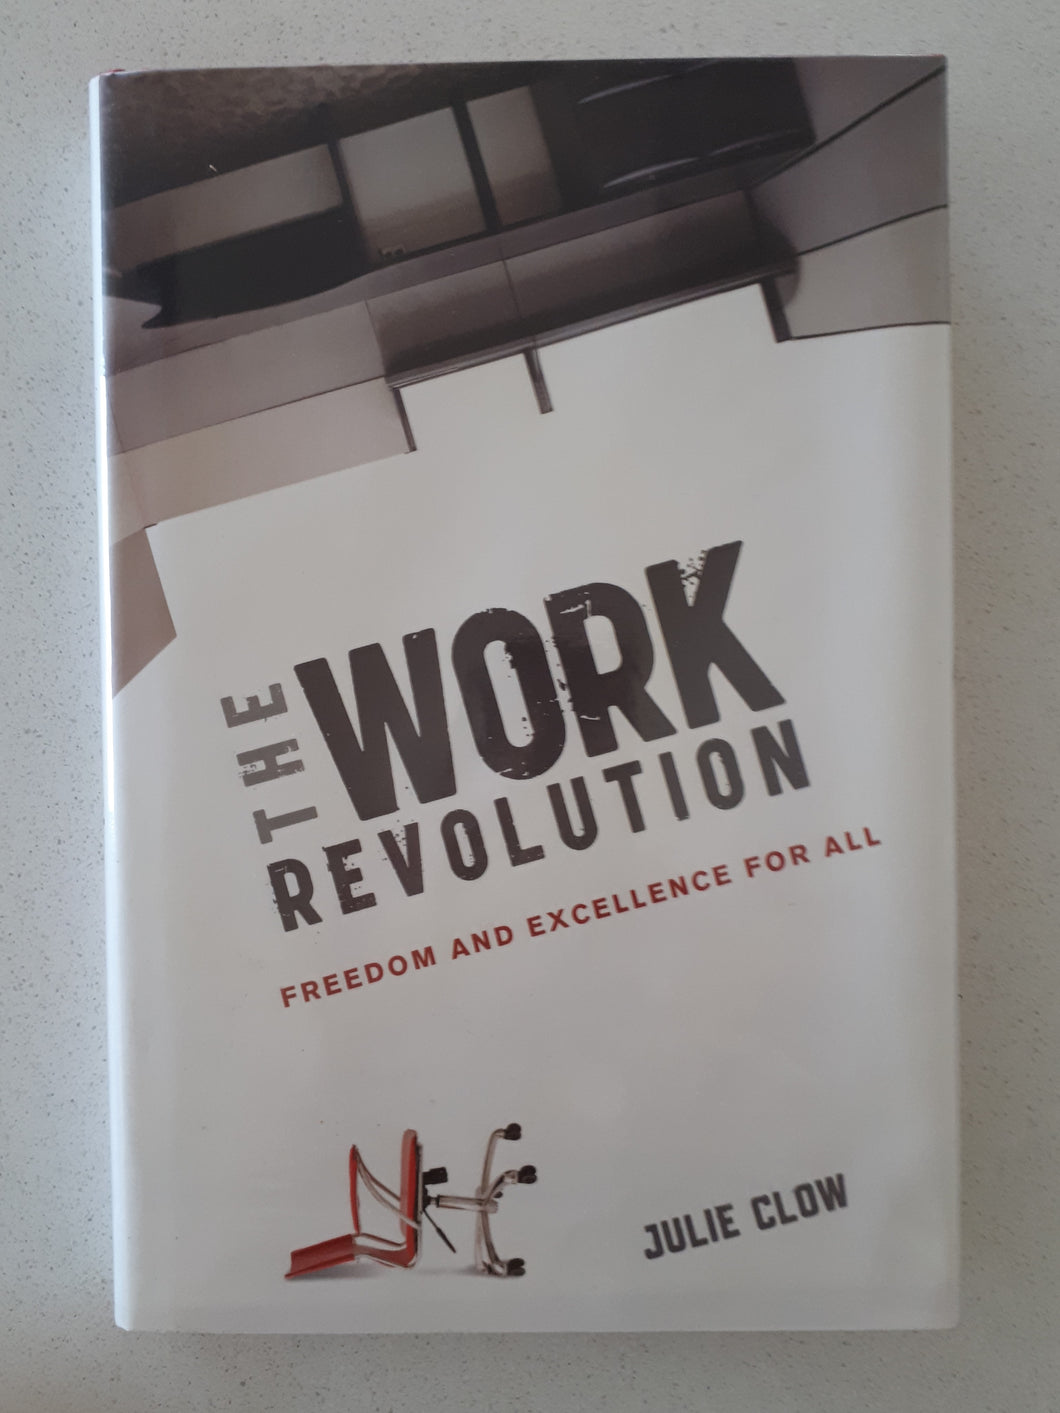 The Work Revolution by Julie Clow